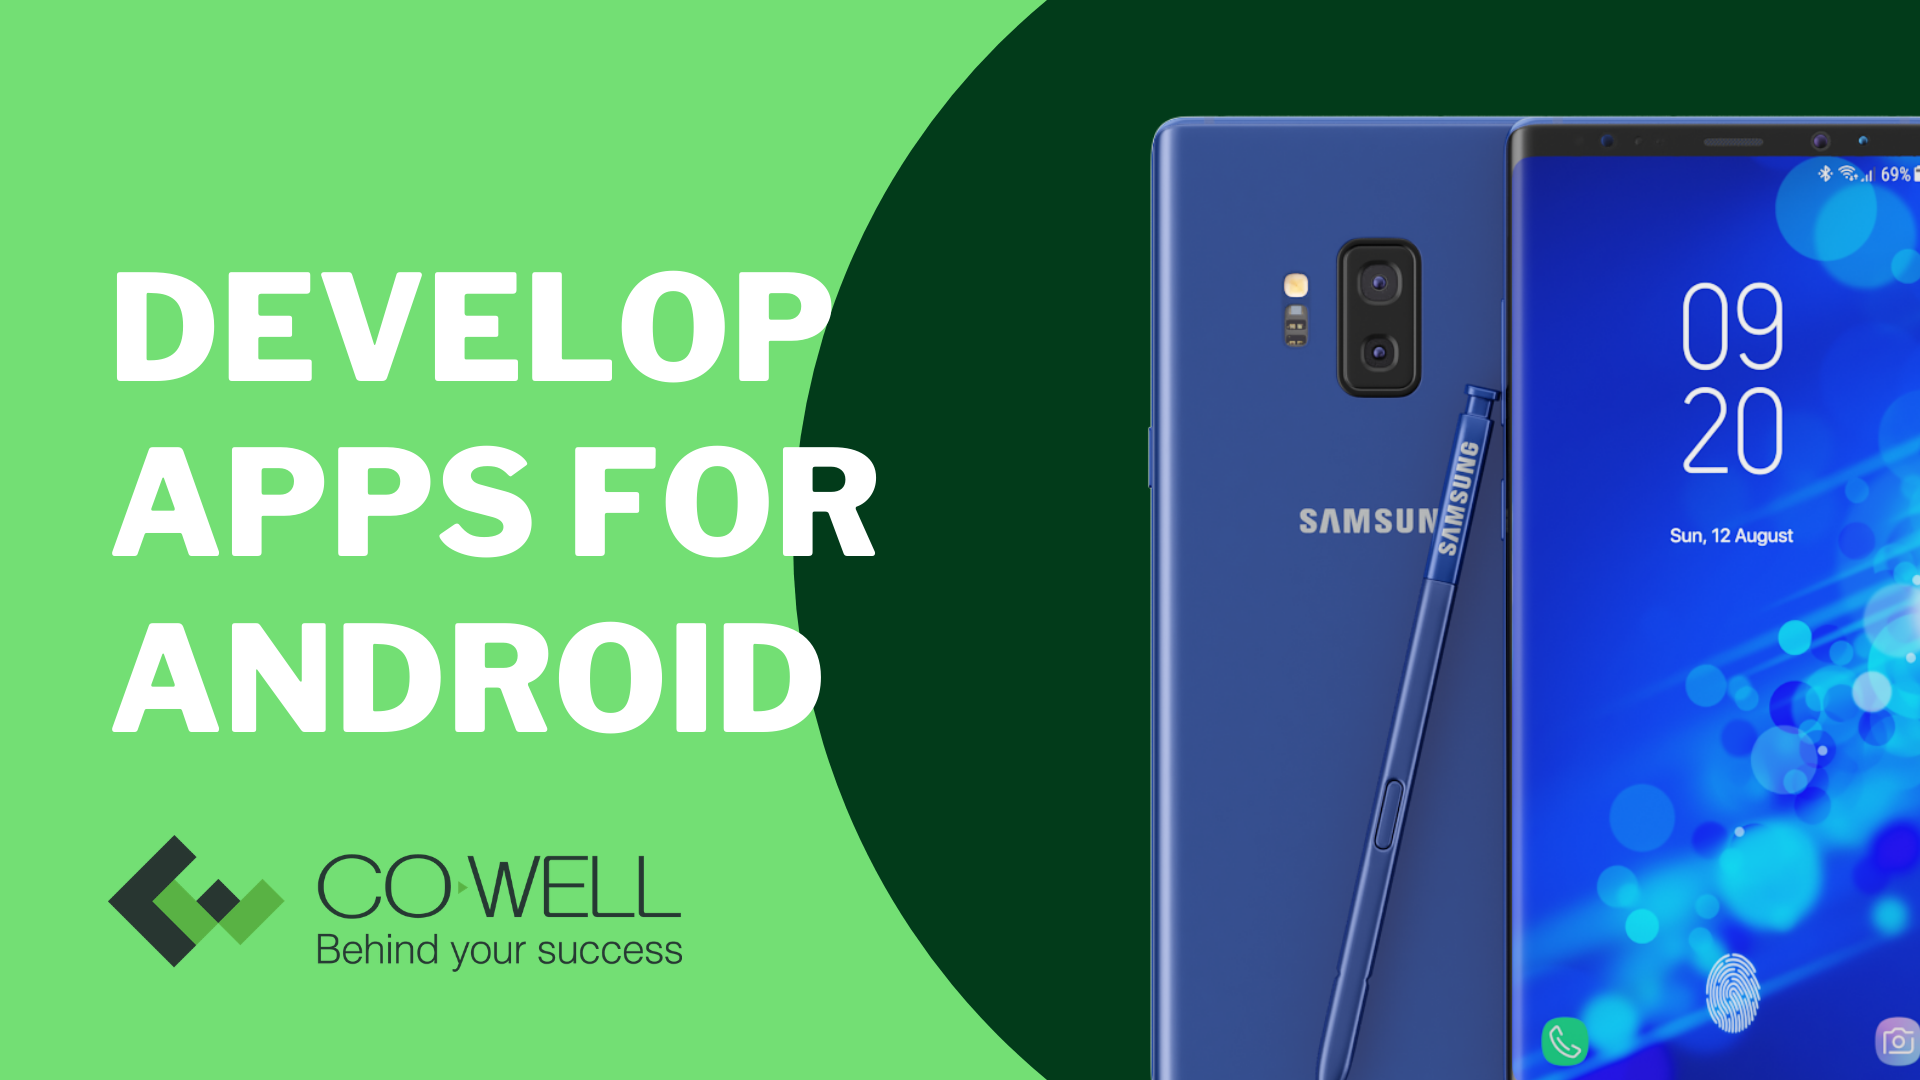 HOW TO DEVELOP APPS FOR ANDROID